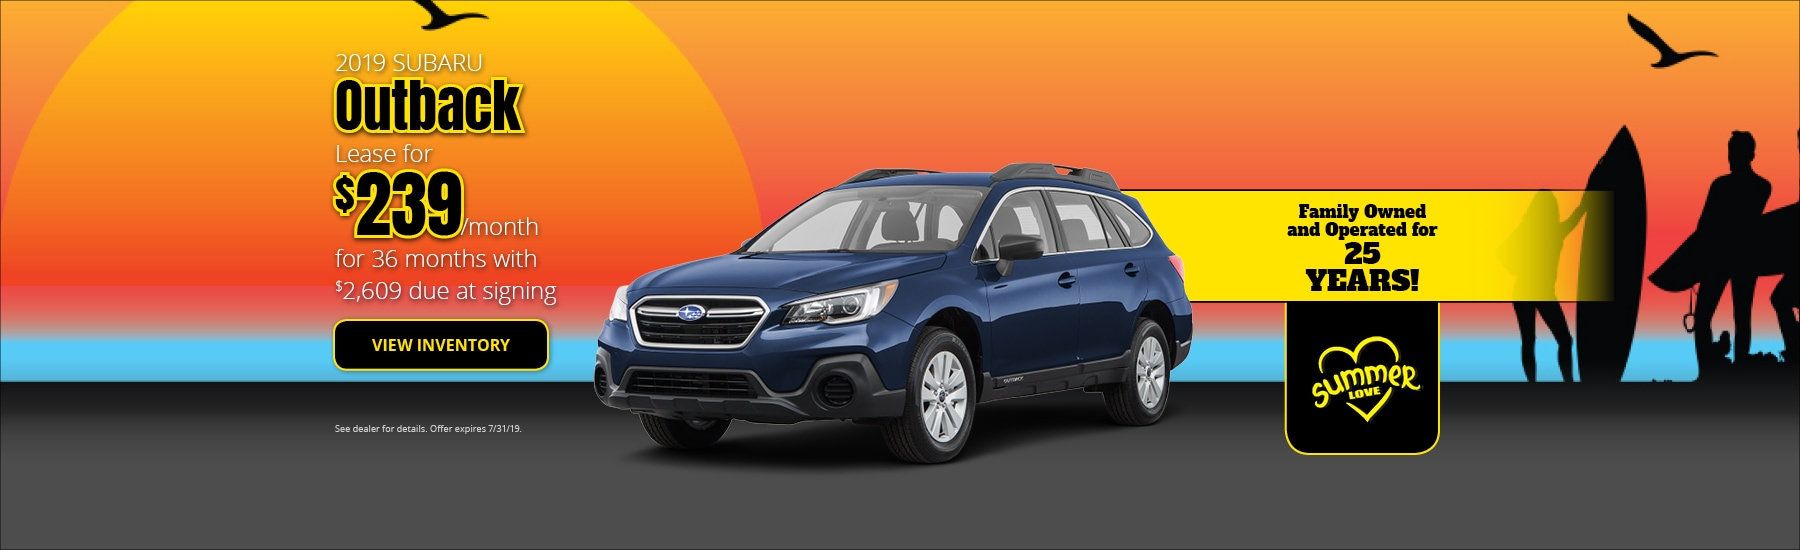 Subaru Of Concord >> Specials On Subaru Outback Concord Nh Lease Offers Special Prices